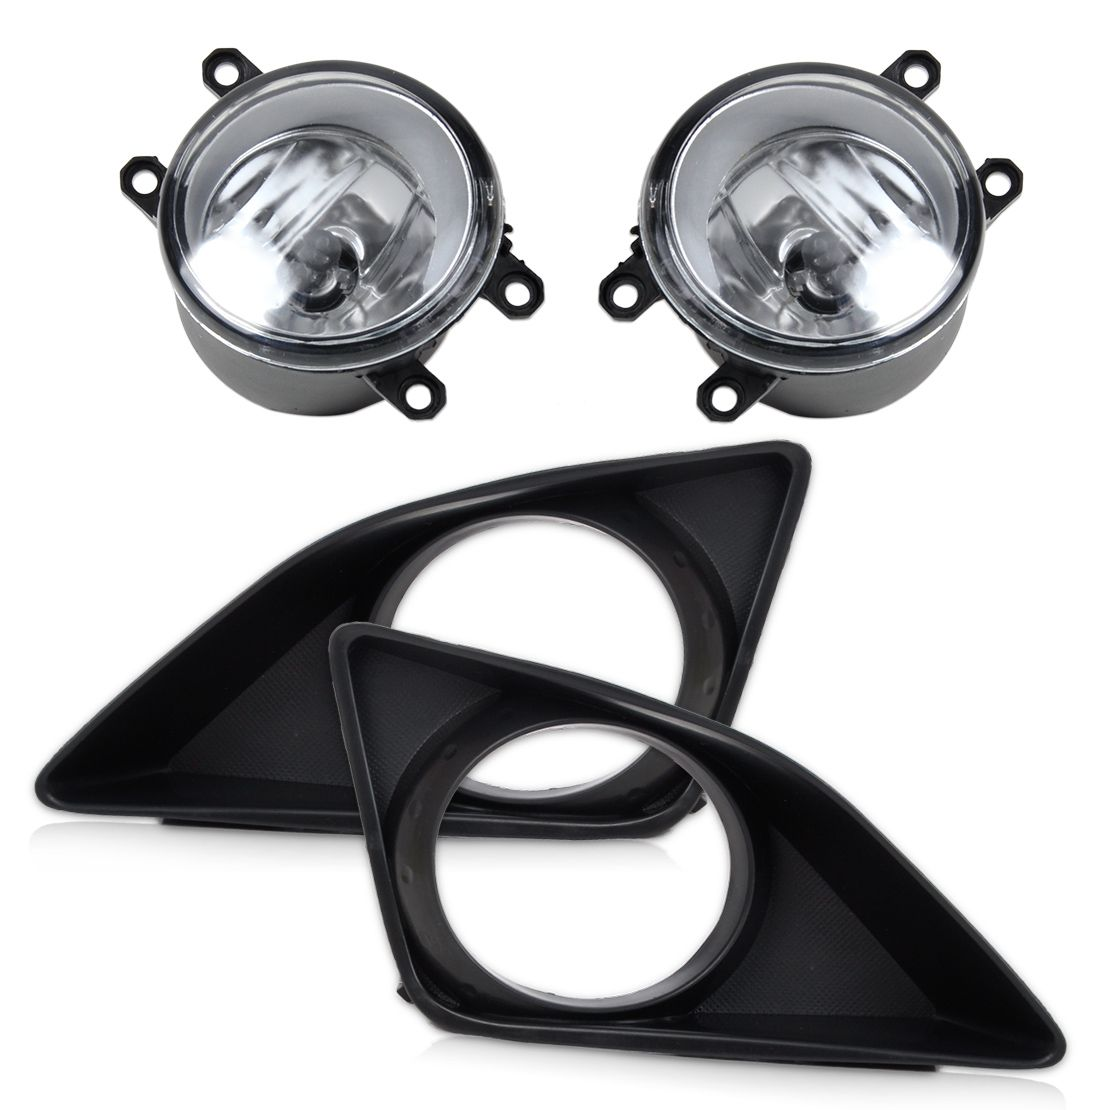 CITALL 4Pcs Front Right Left Fog Light Lamp + Grille Cover Bezel for Toyota Corolla 2007 2008 2009 2010